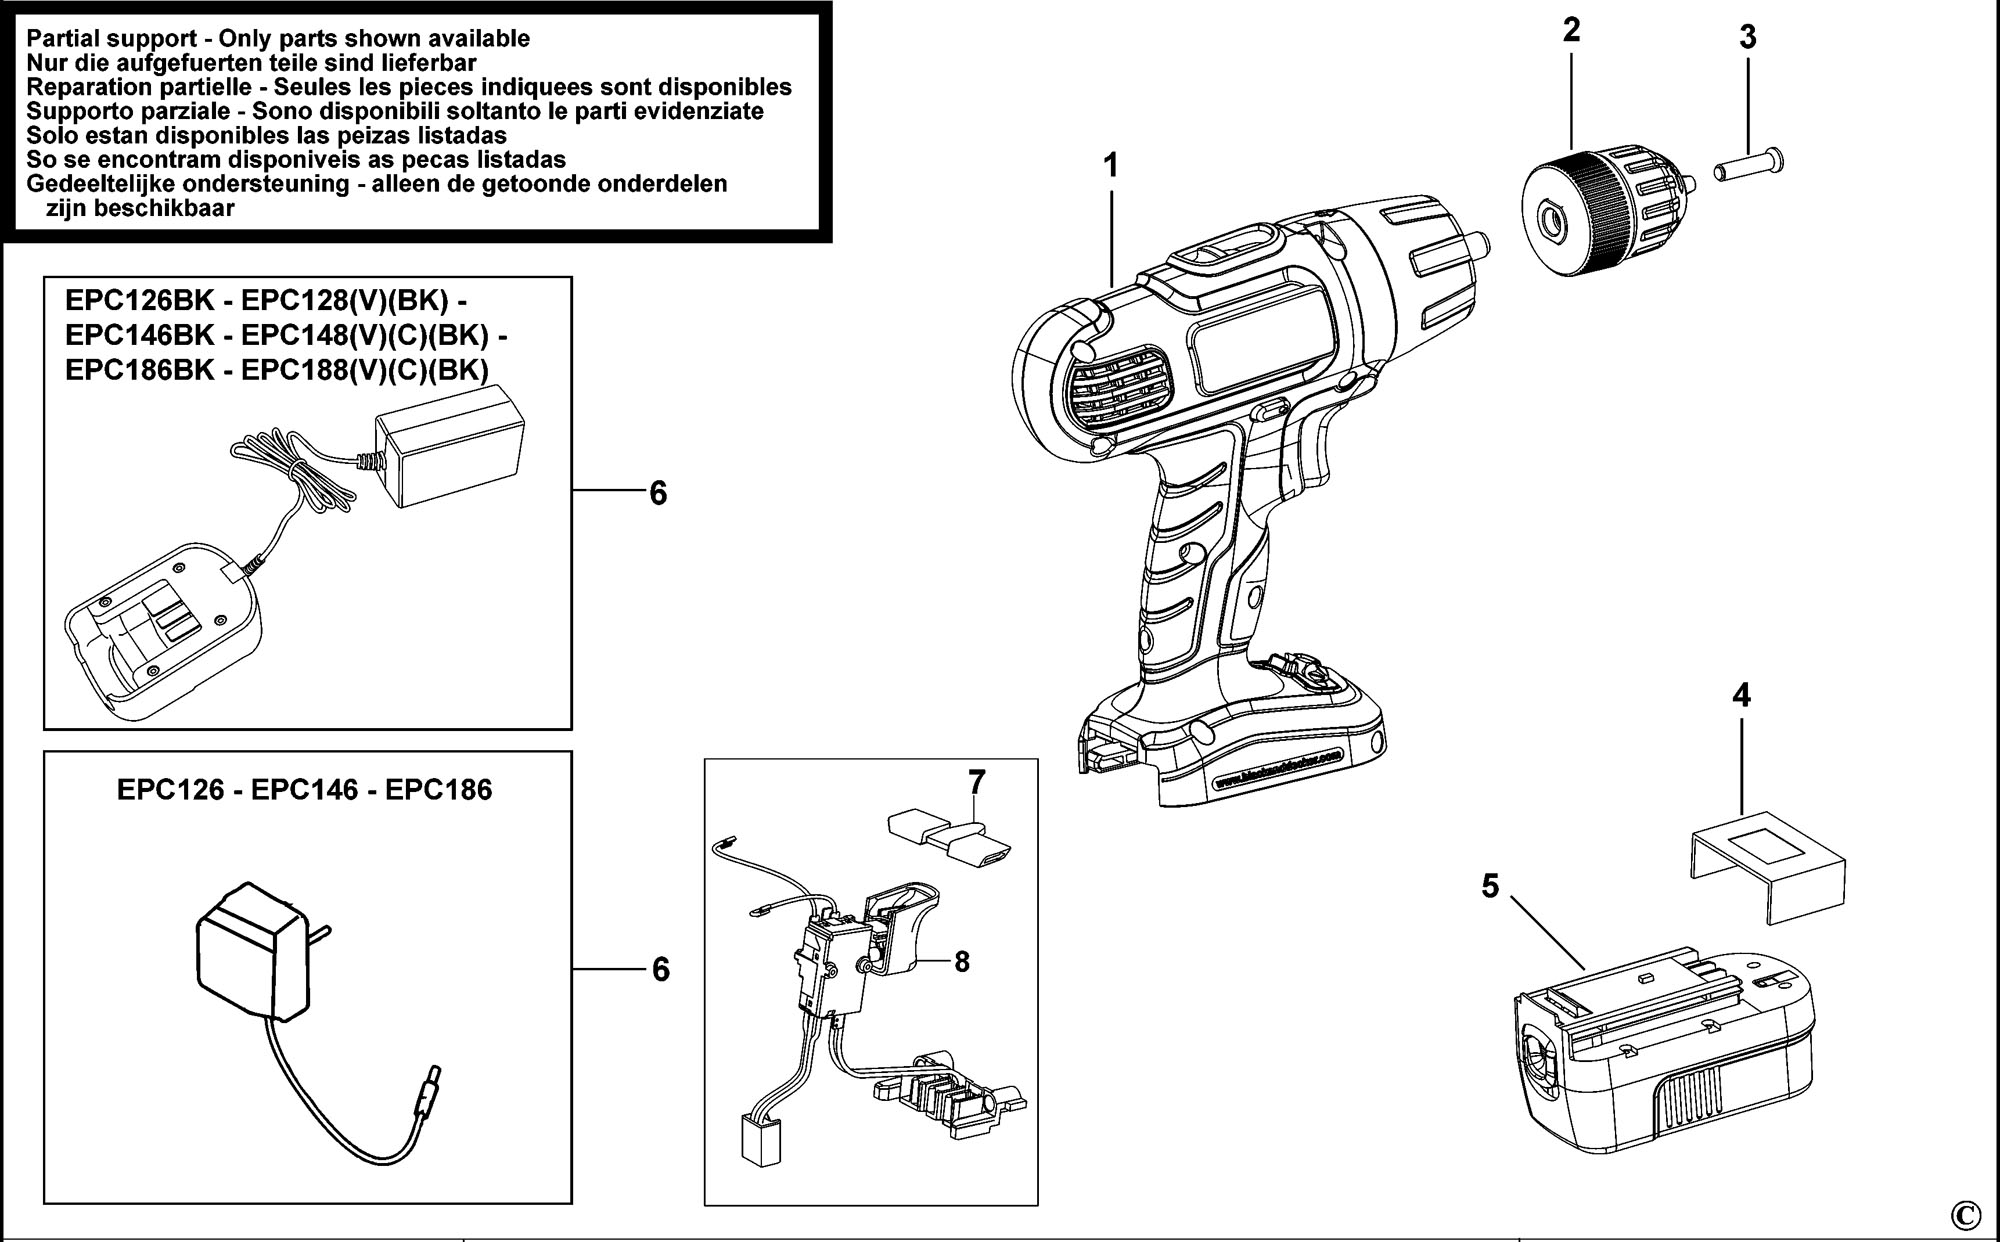 Spares For Black Amp Decker Epc148v Cordless Drill Type H1